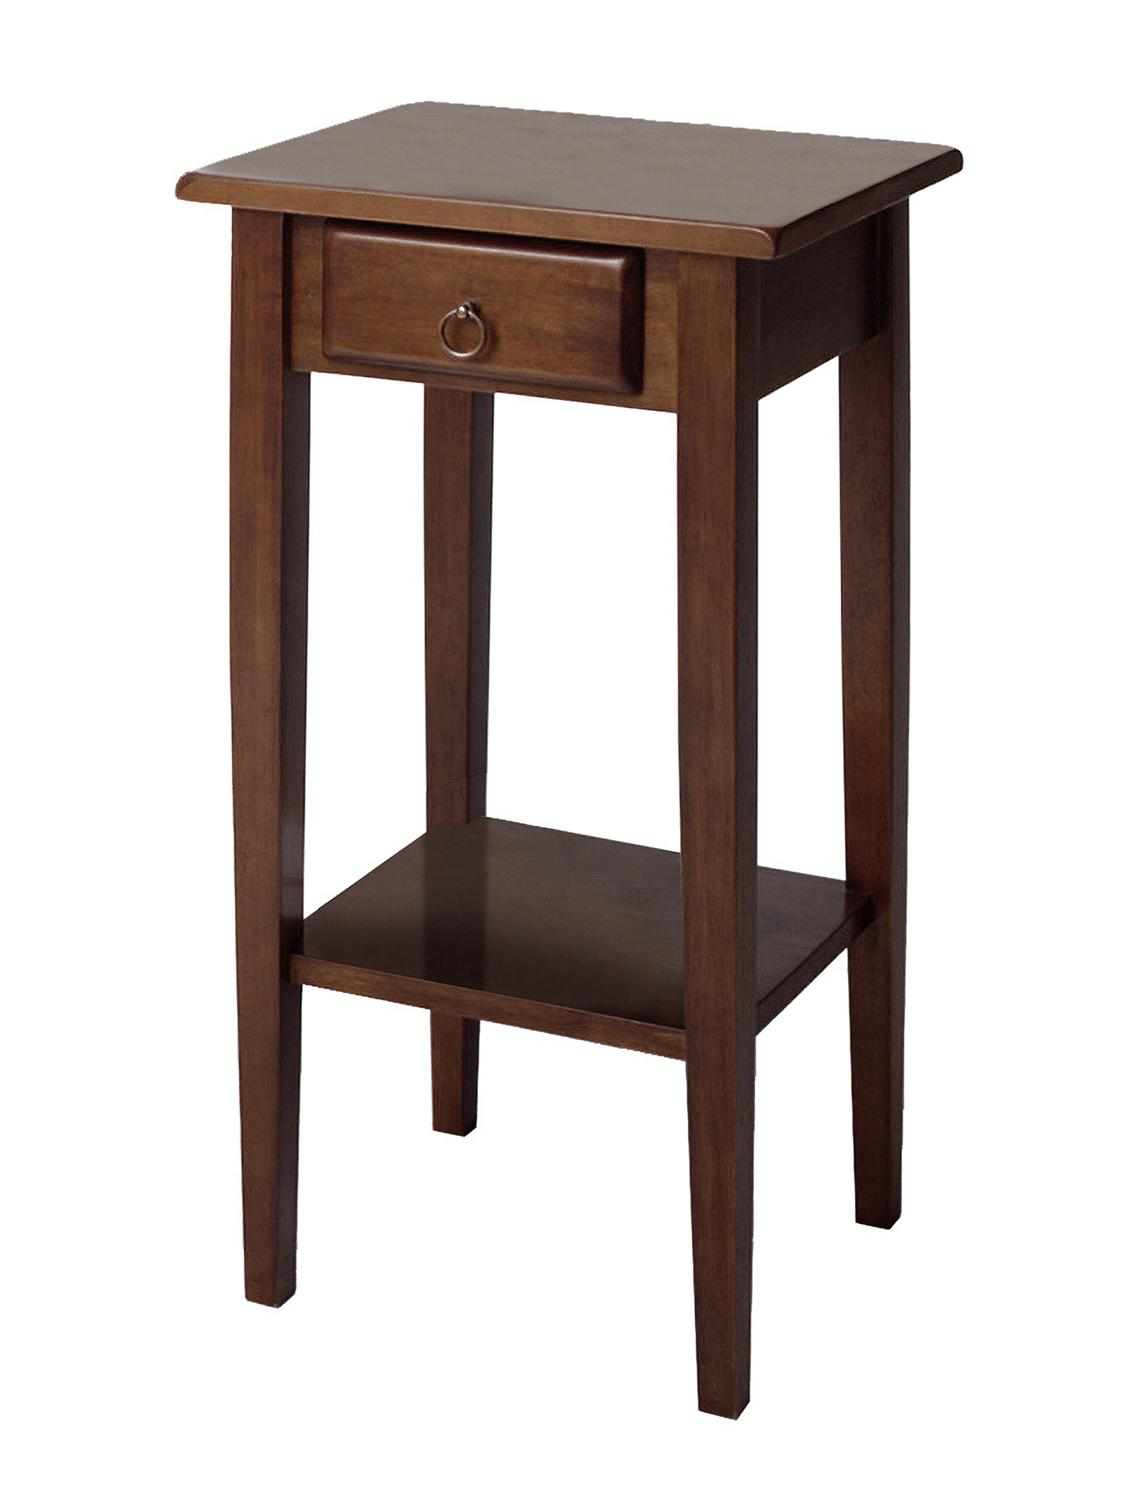 Winsome Regalia Accent Table With Drawer Shelf By Oj Commerce 94430